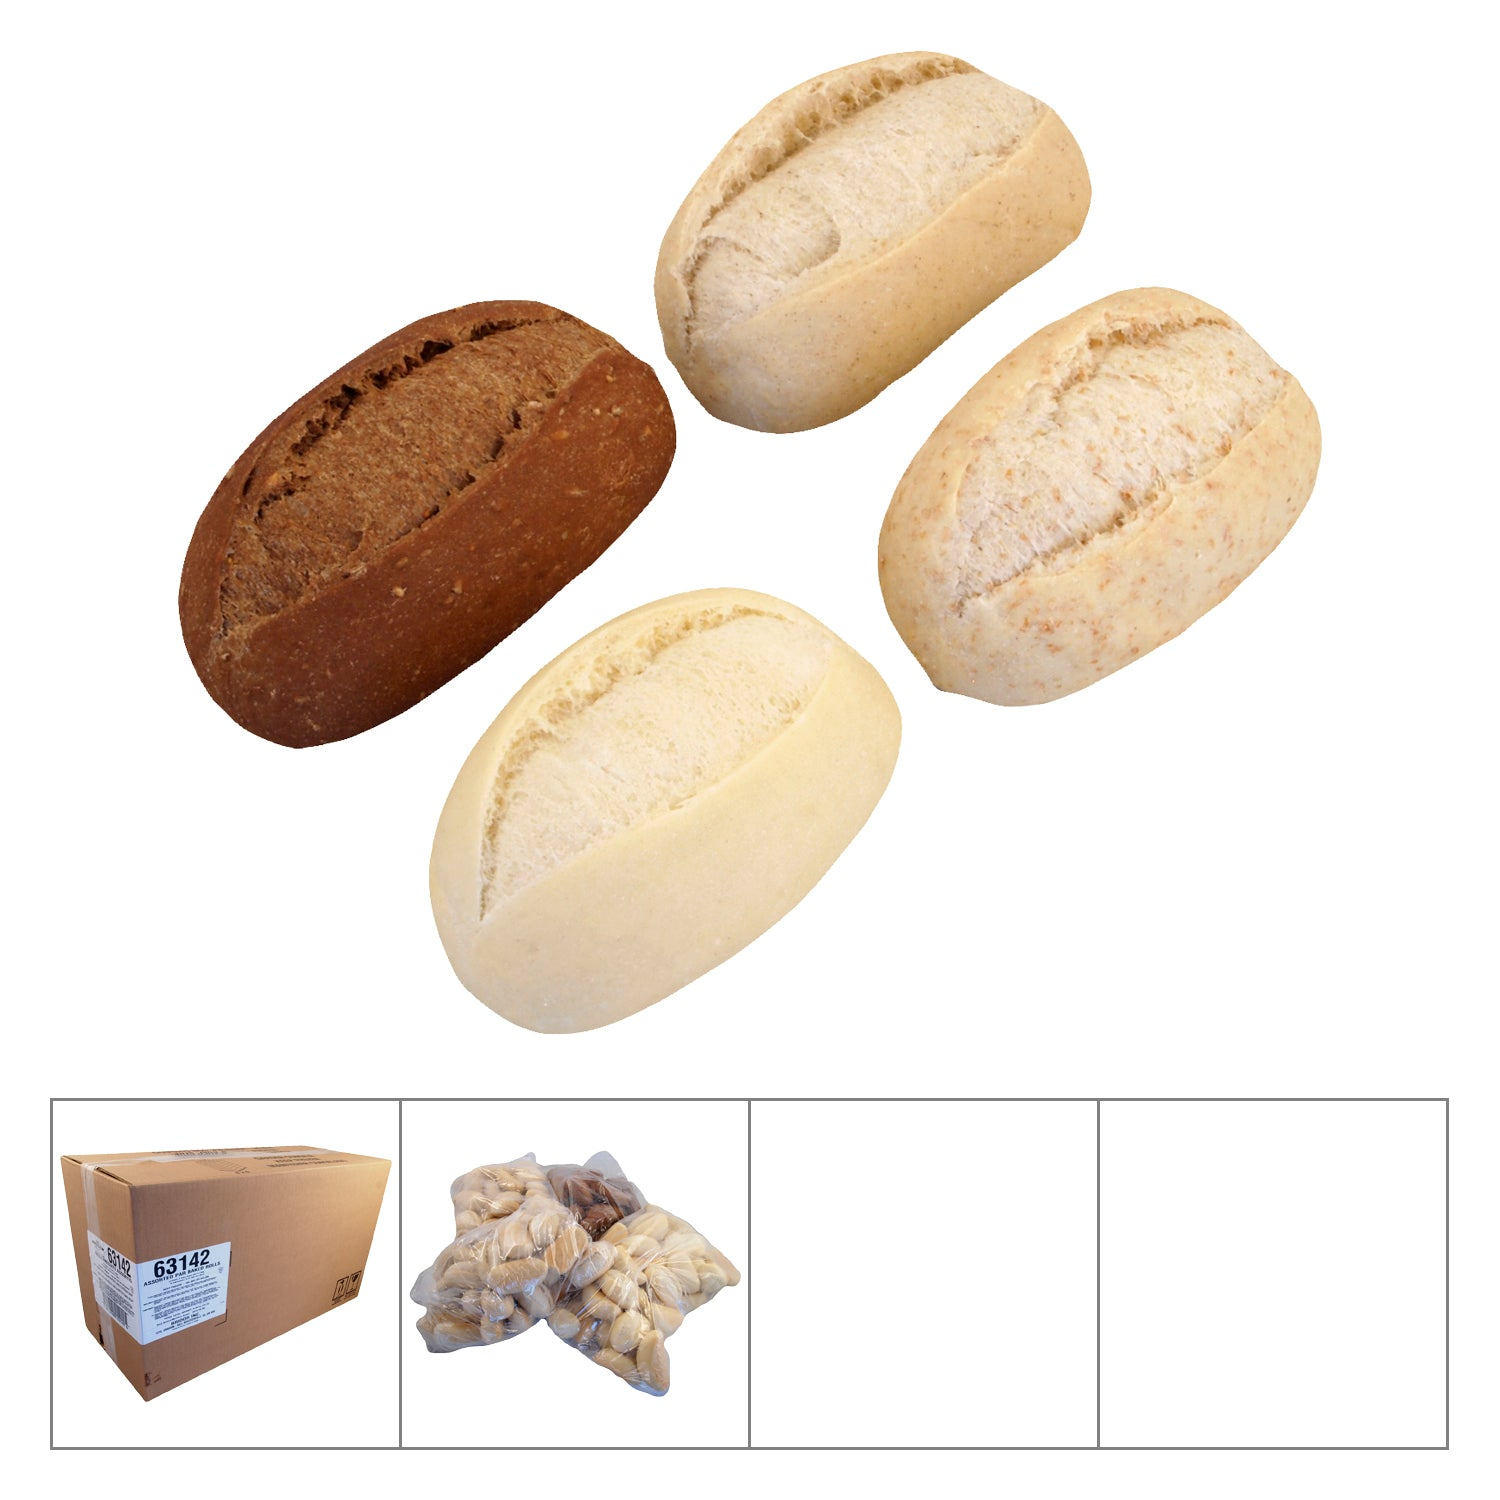 Bridor Frozen Assorted French Rolls (Pumpernickel/Whole Wheat/Rye) 45 g - 144 Pack [$0.33/roll]